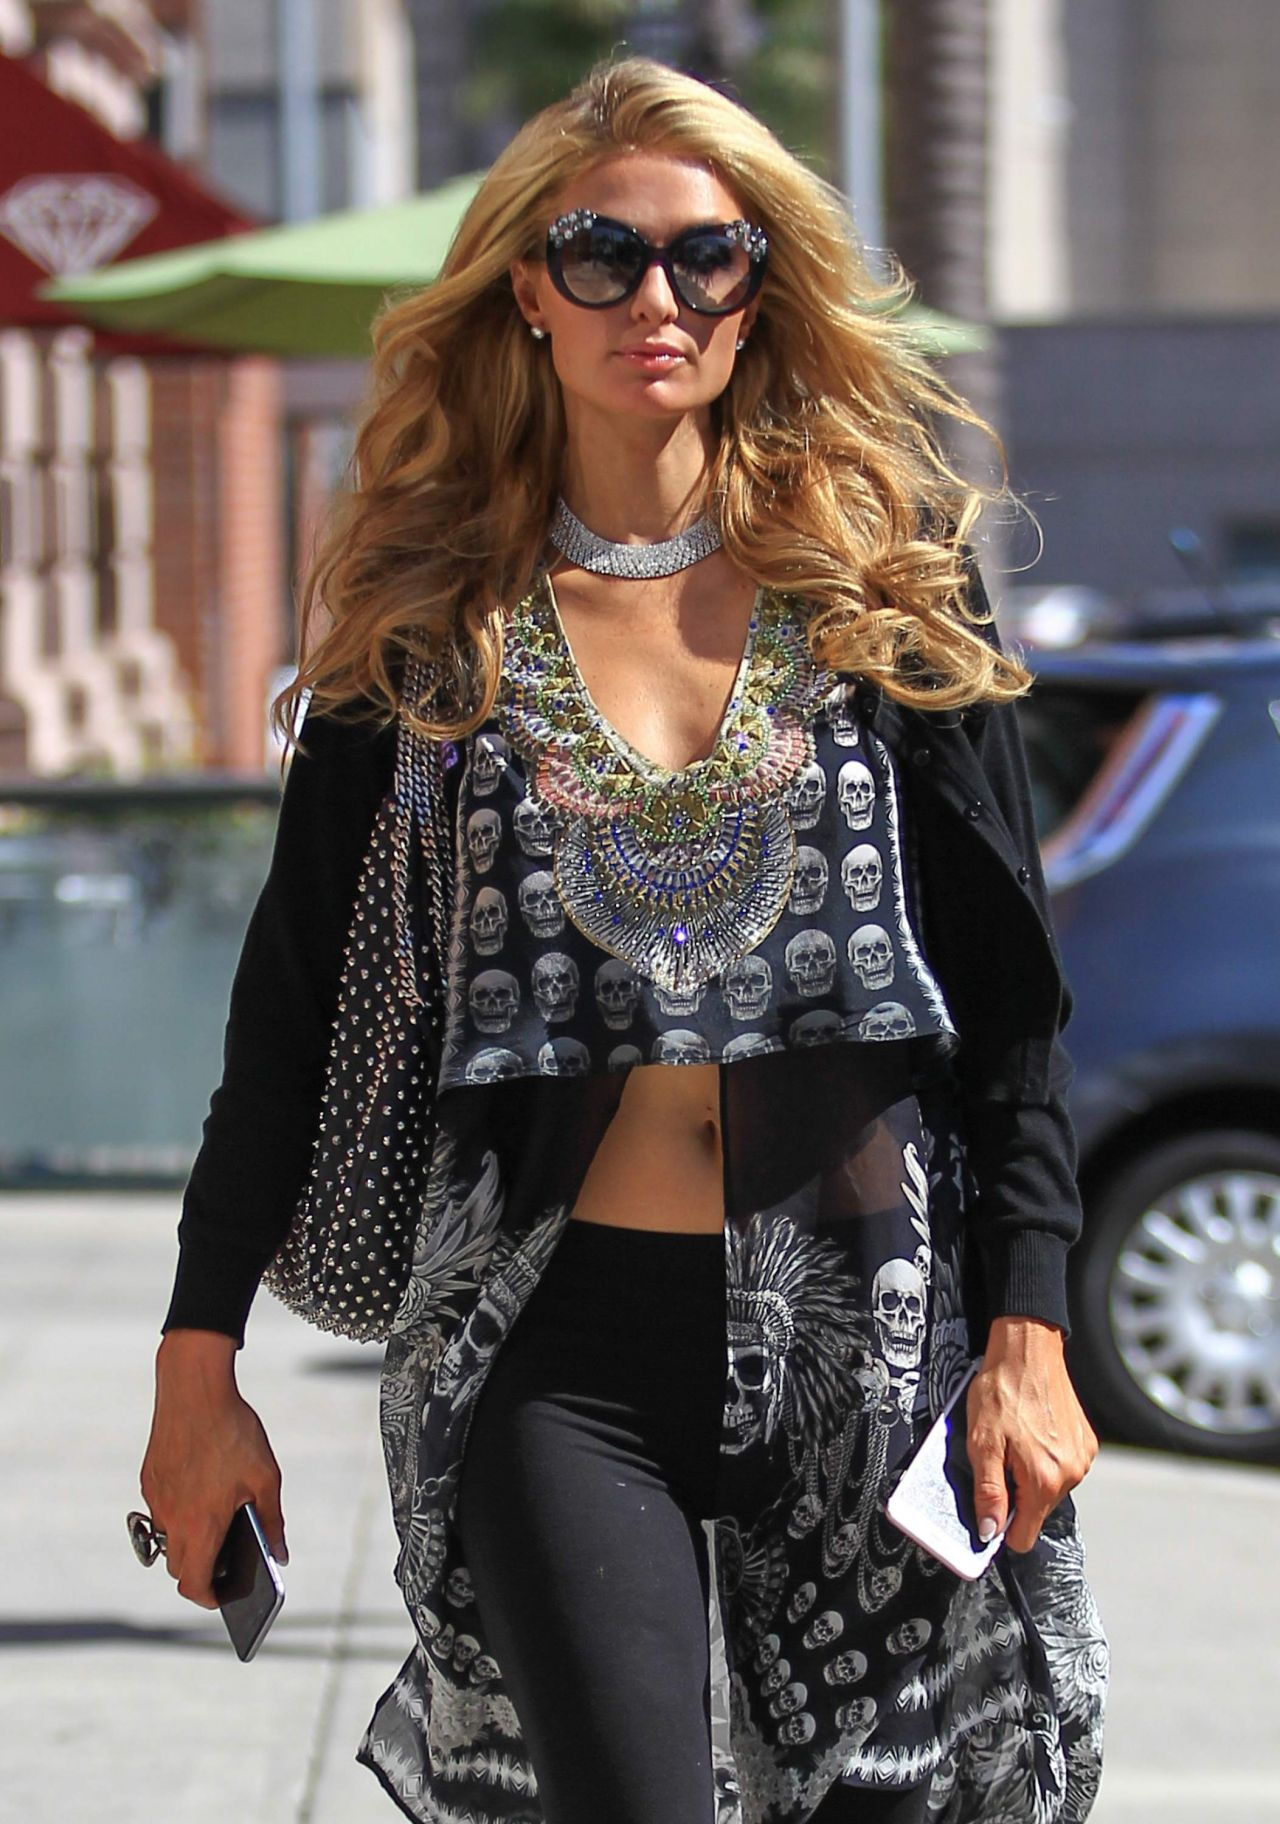 Paris Hilton Urban Outfit - Los Angeles 9/6/2016 Alessandra Ambrosio Outfit